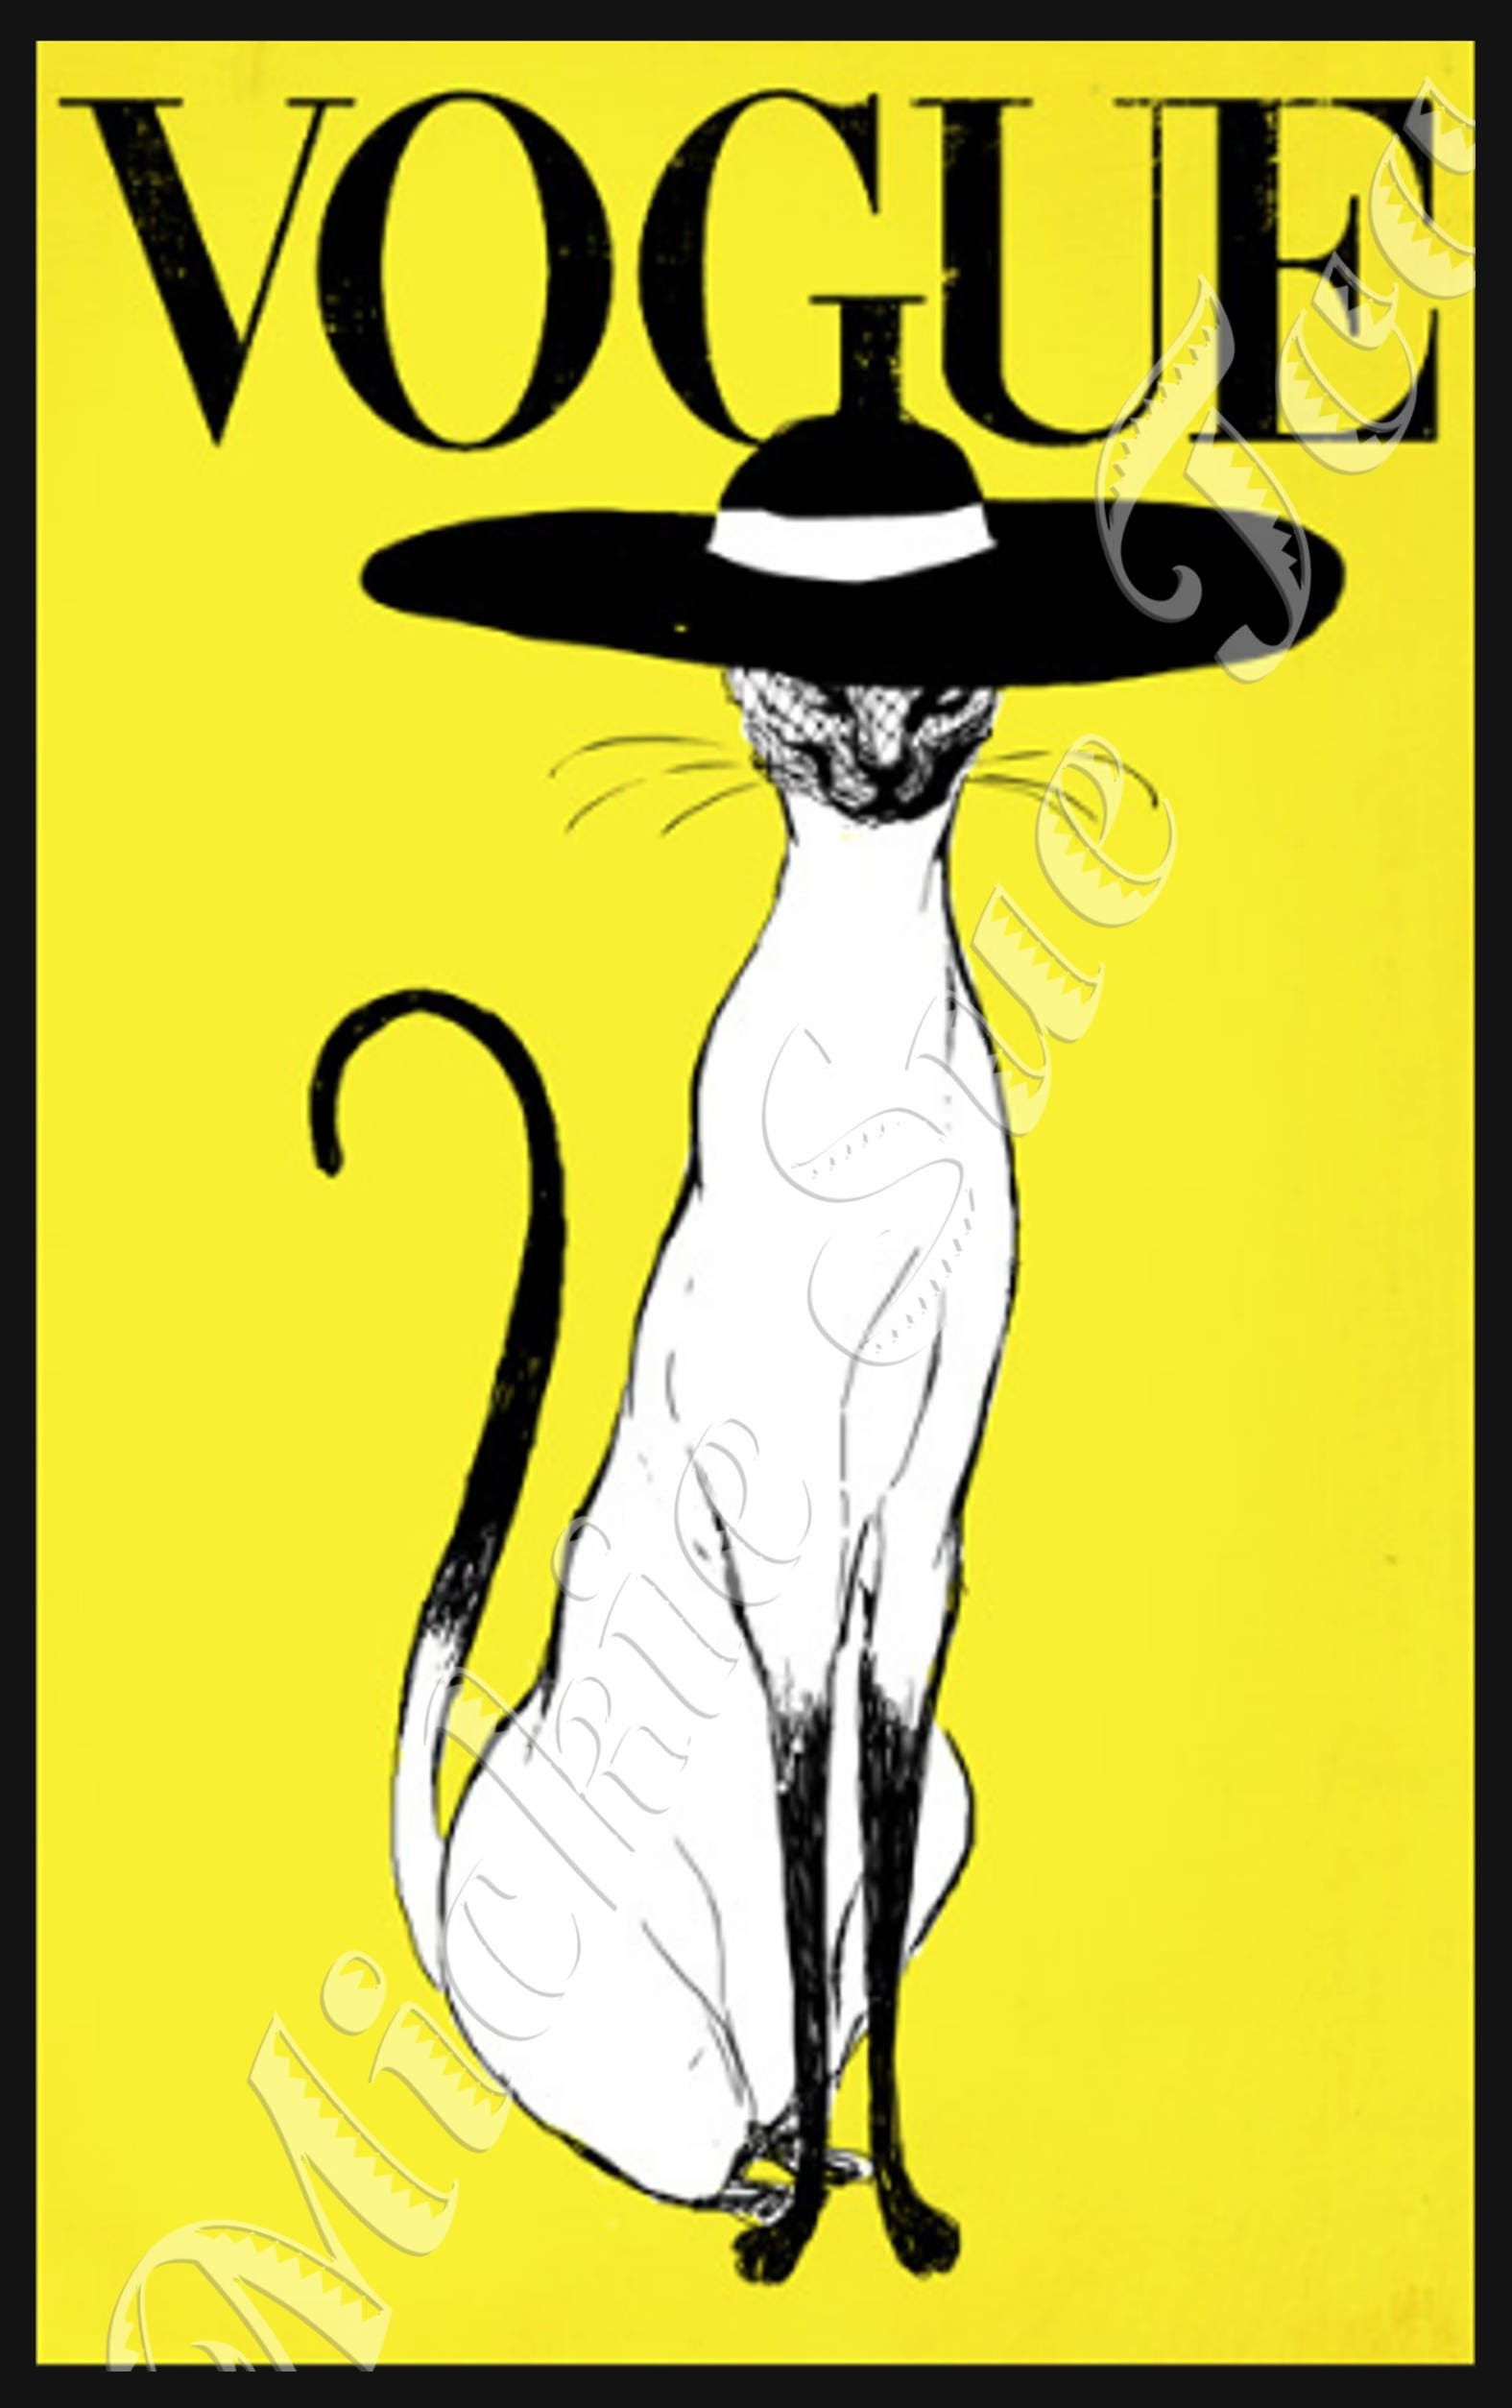 HAUTE CHAT en VOGUE High Fashion Siamese Cat on Vogue Cover